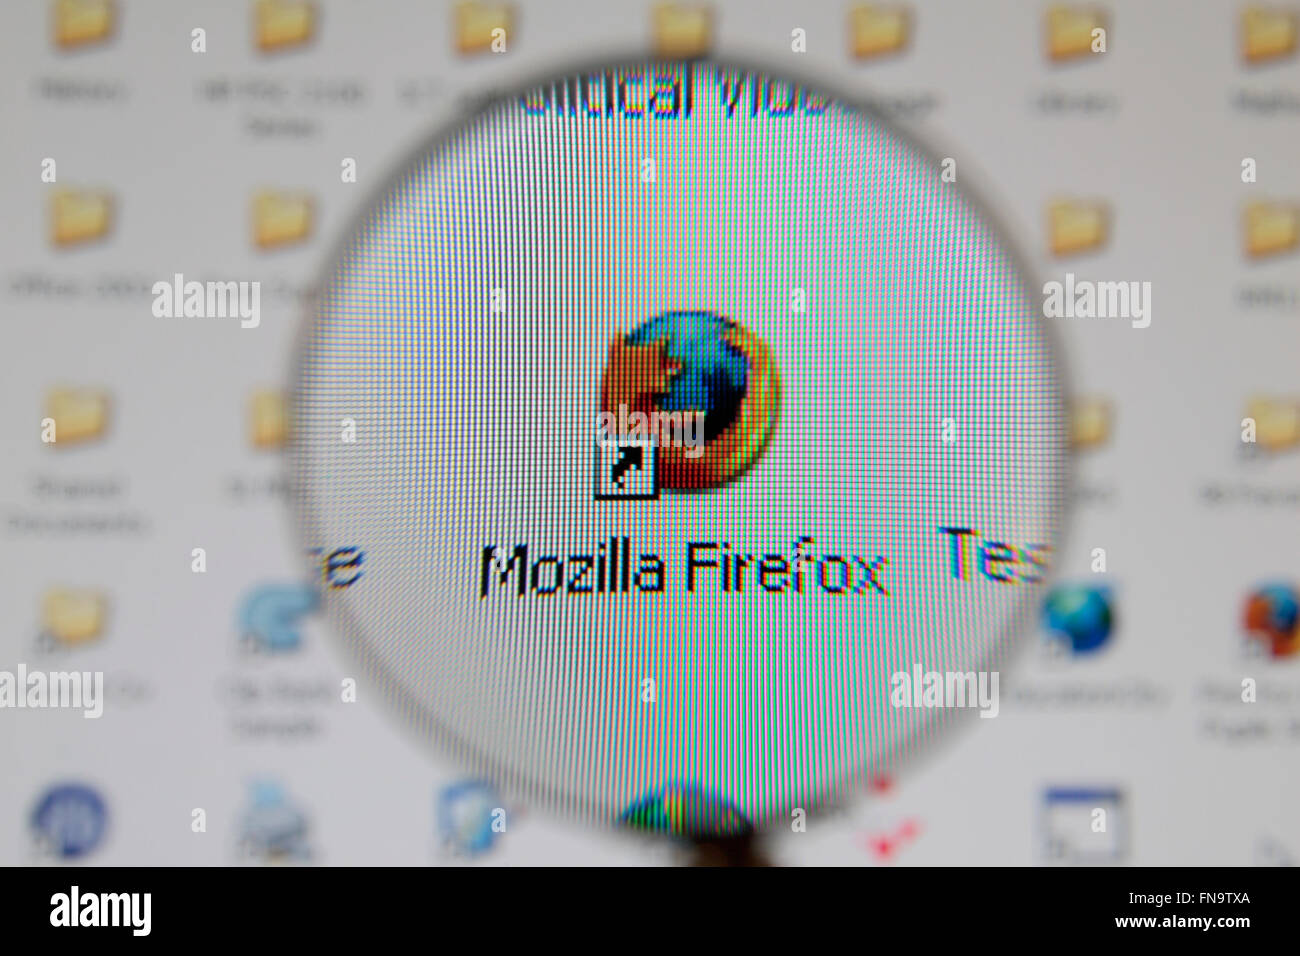 The Mozilla Firefox logo on a windows desktop computer as viewed through a magnifying glass. - Stock Image